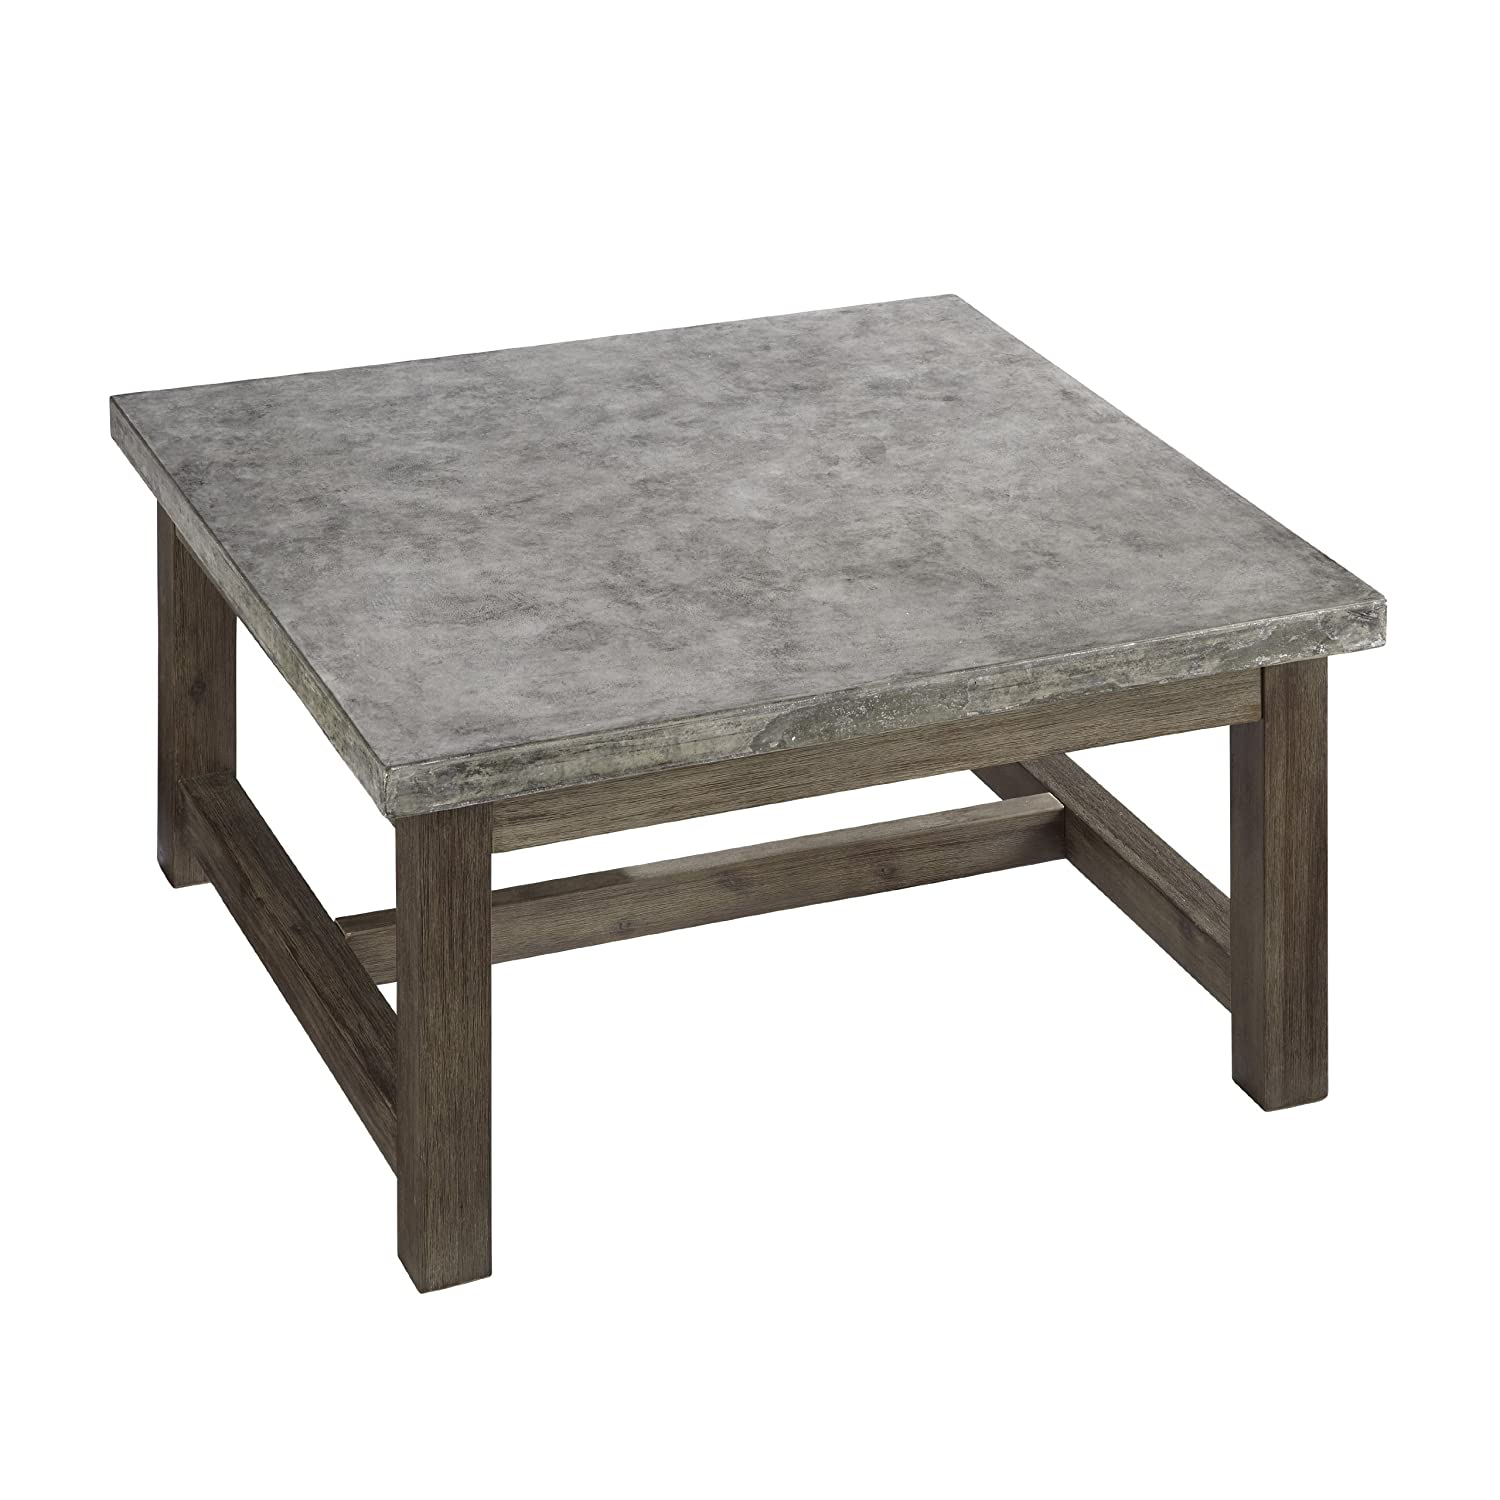 Etonnant Amazon.com: Home Styles 5133 21 Concrete Chic Square Coffee Table: Kitchen  U0026 Dining